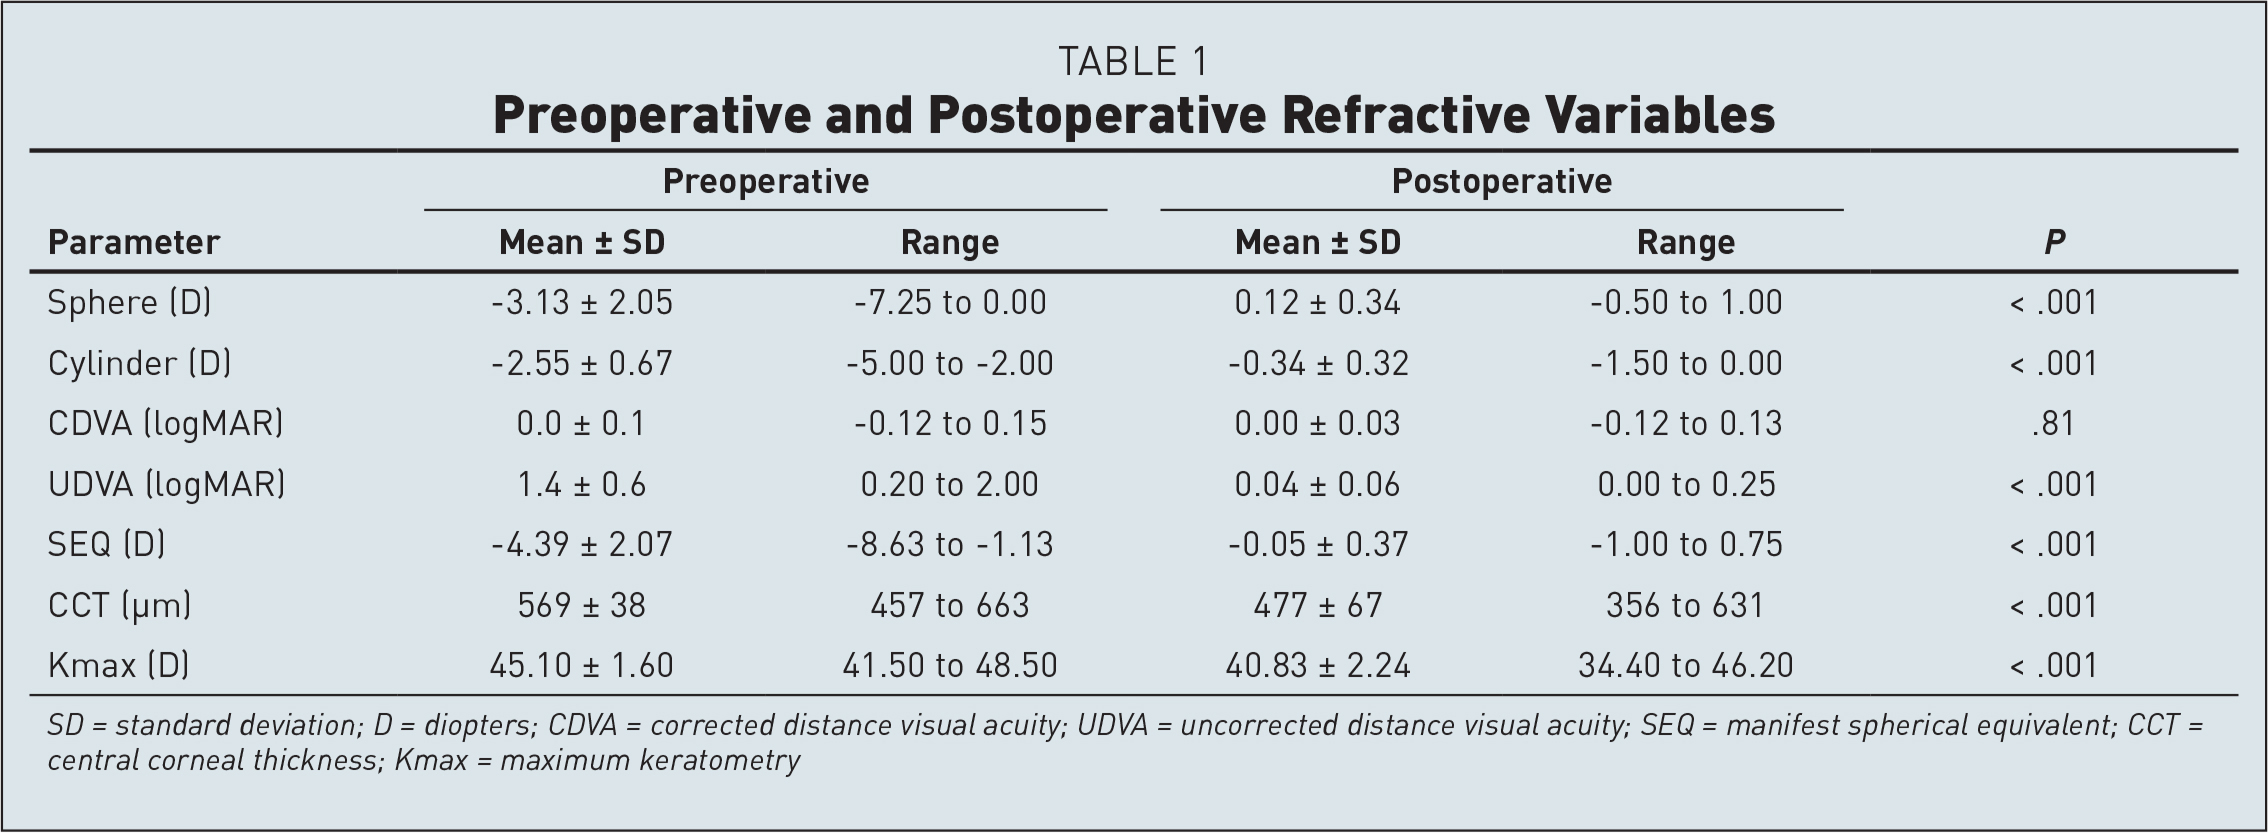 Preoperative and Postoperative Refractive Variables